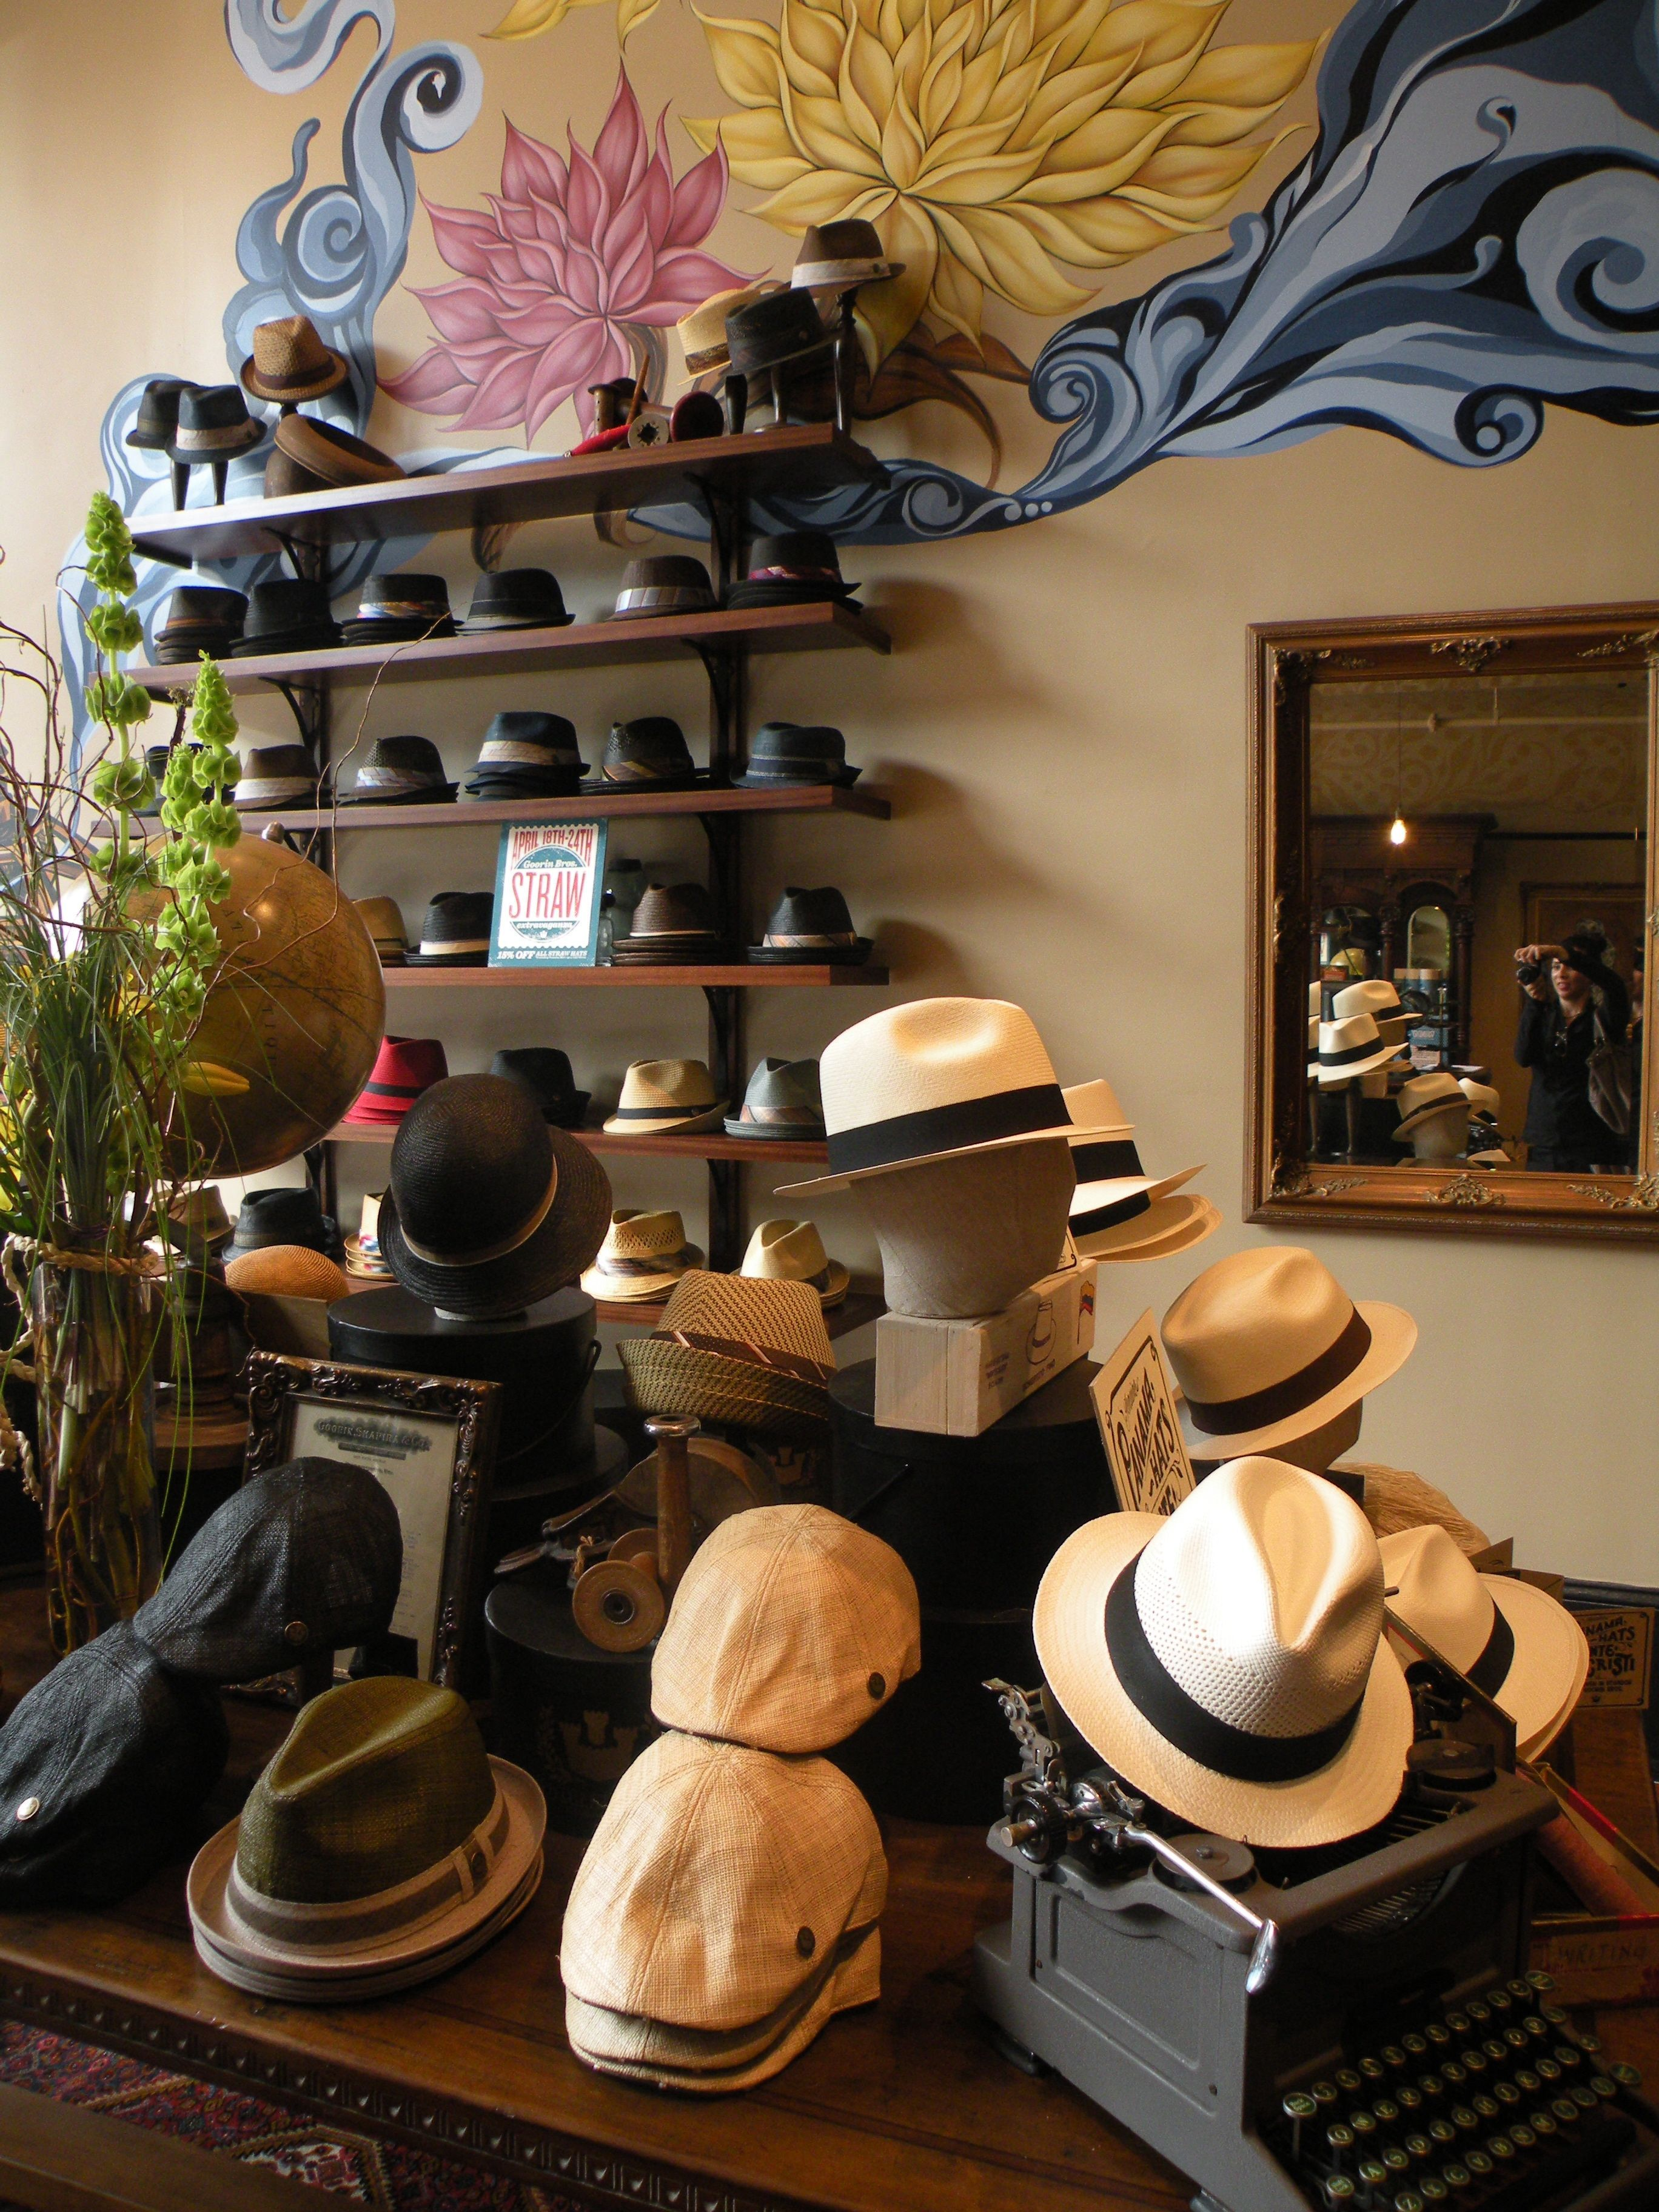 I have this idea of letting the guys choose between a few for How to store hats